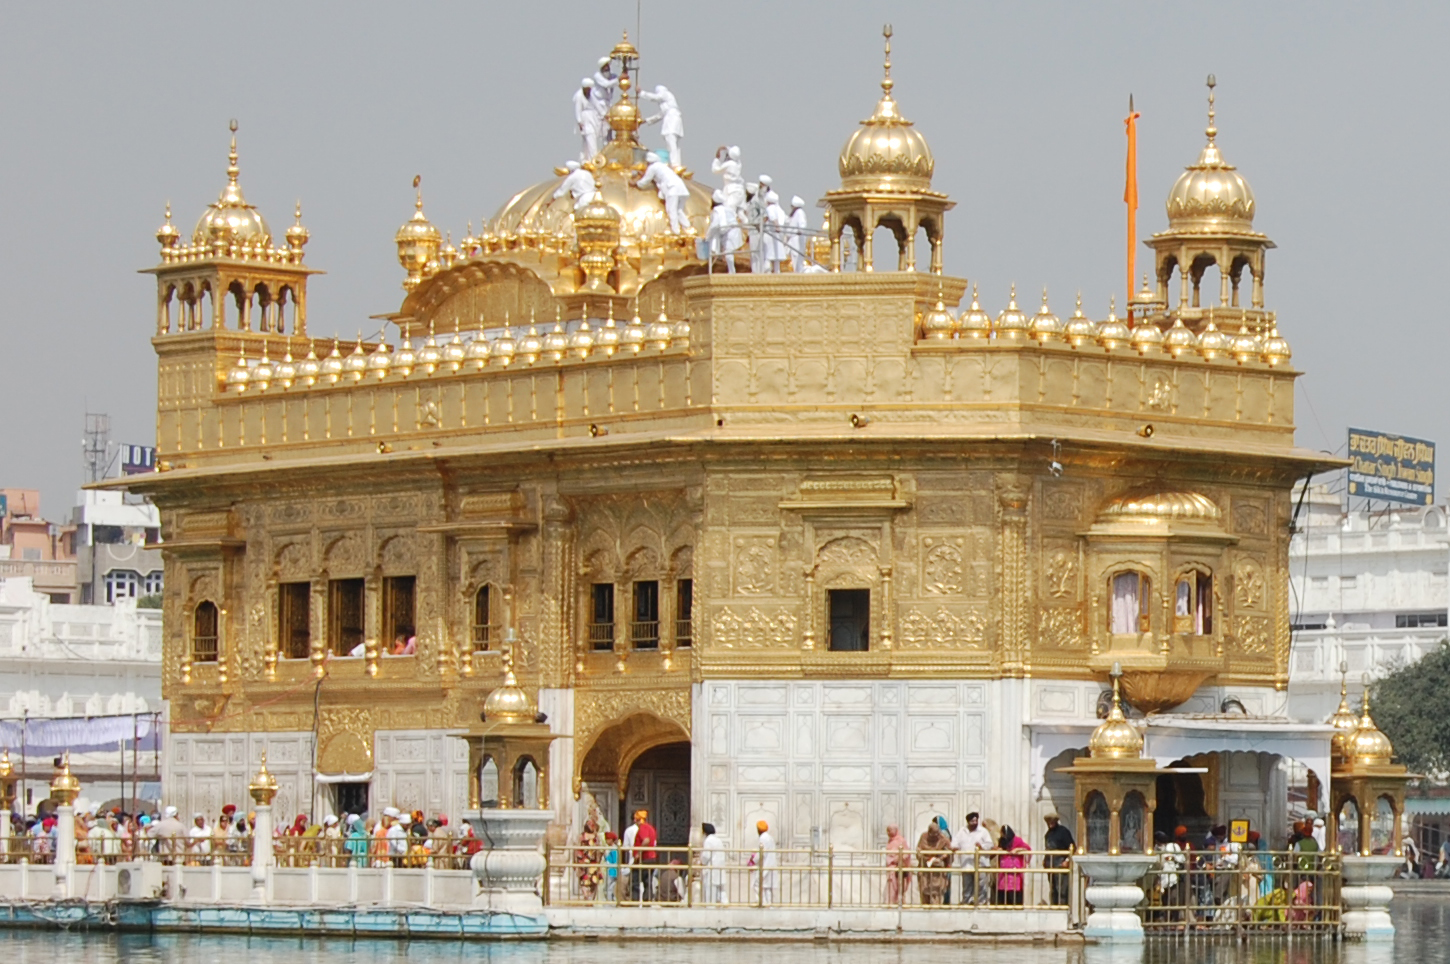 The Golden Temple, one of the holiest Sikh gurdwaras. Photo courtesy: Wikimedia